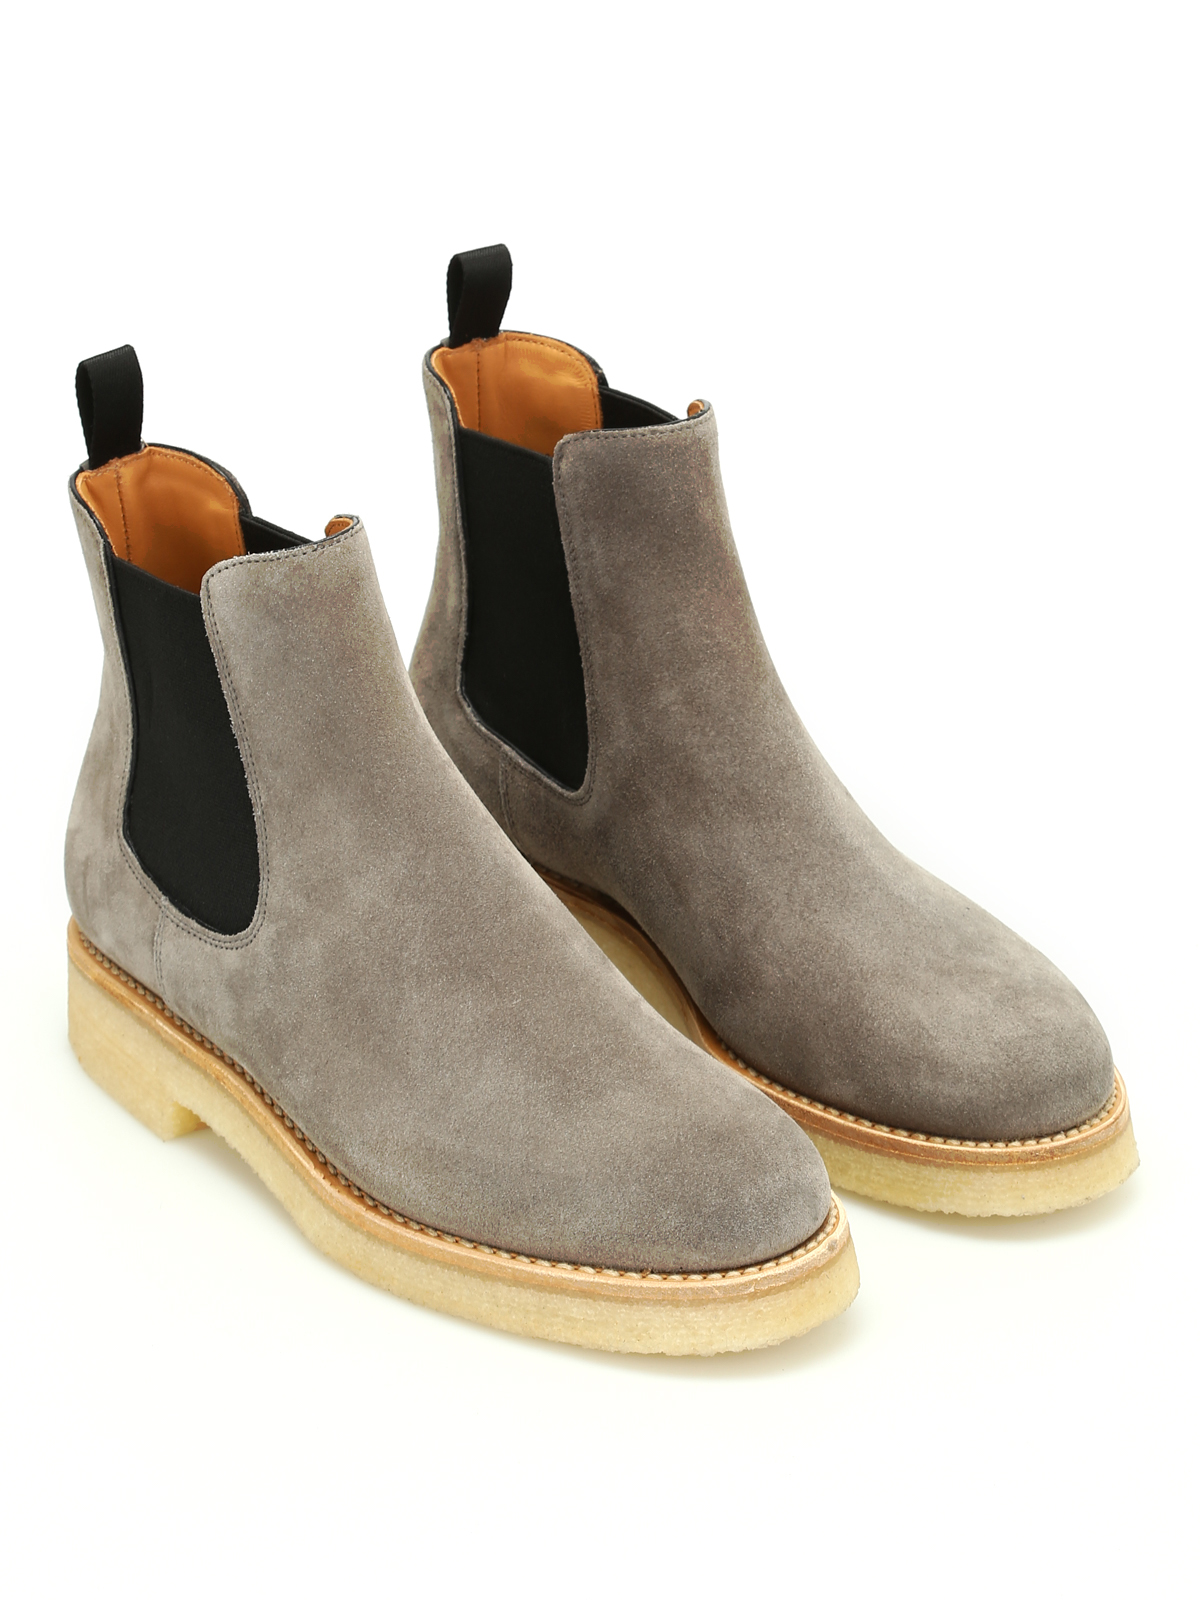 Suede Chelsea boots with crepe sole